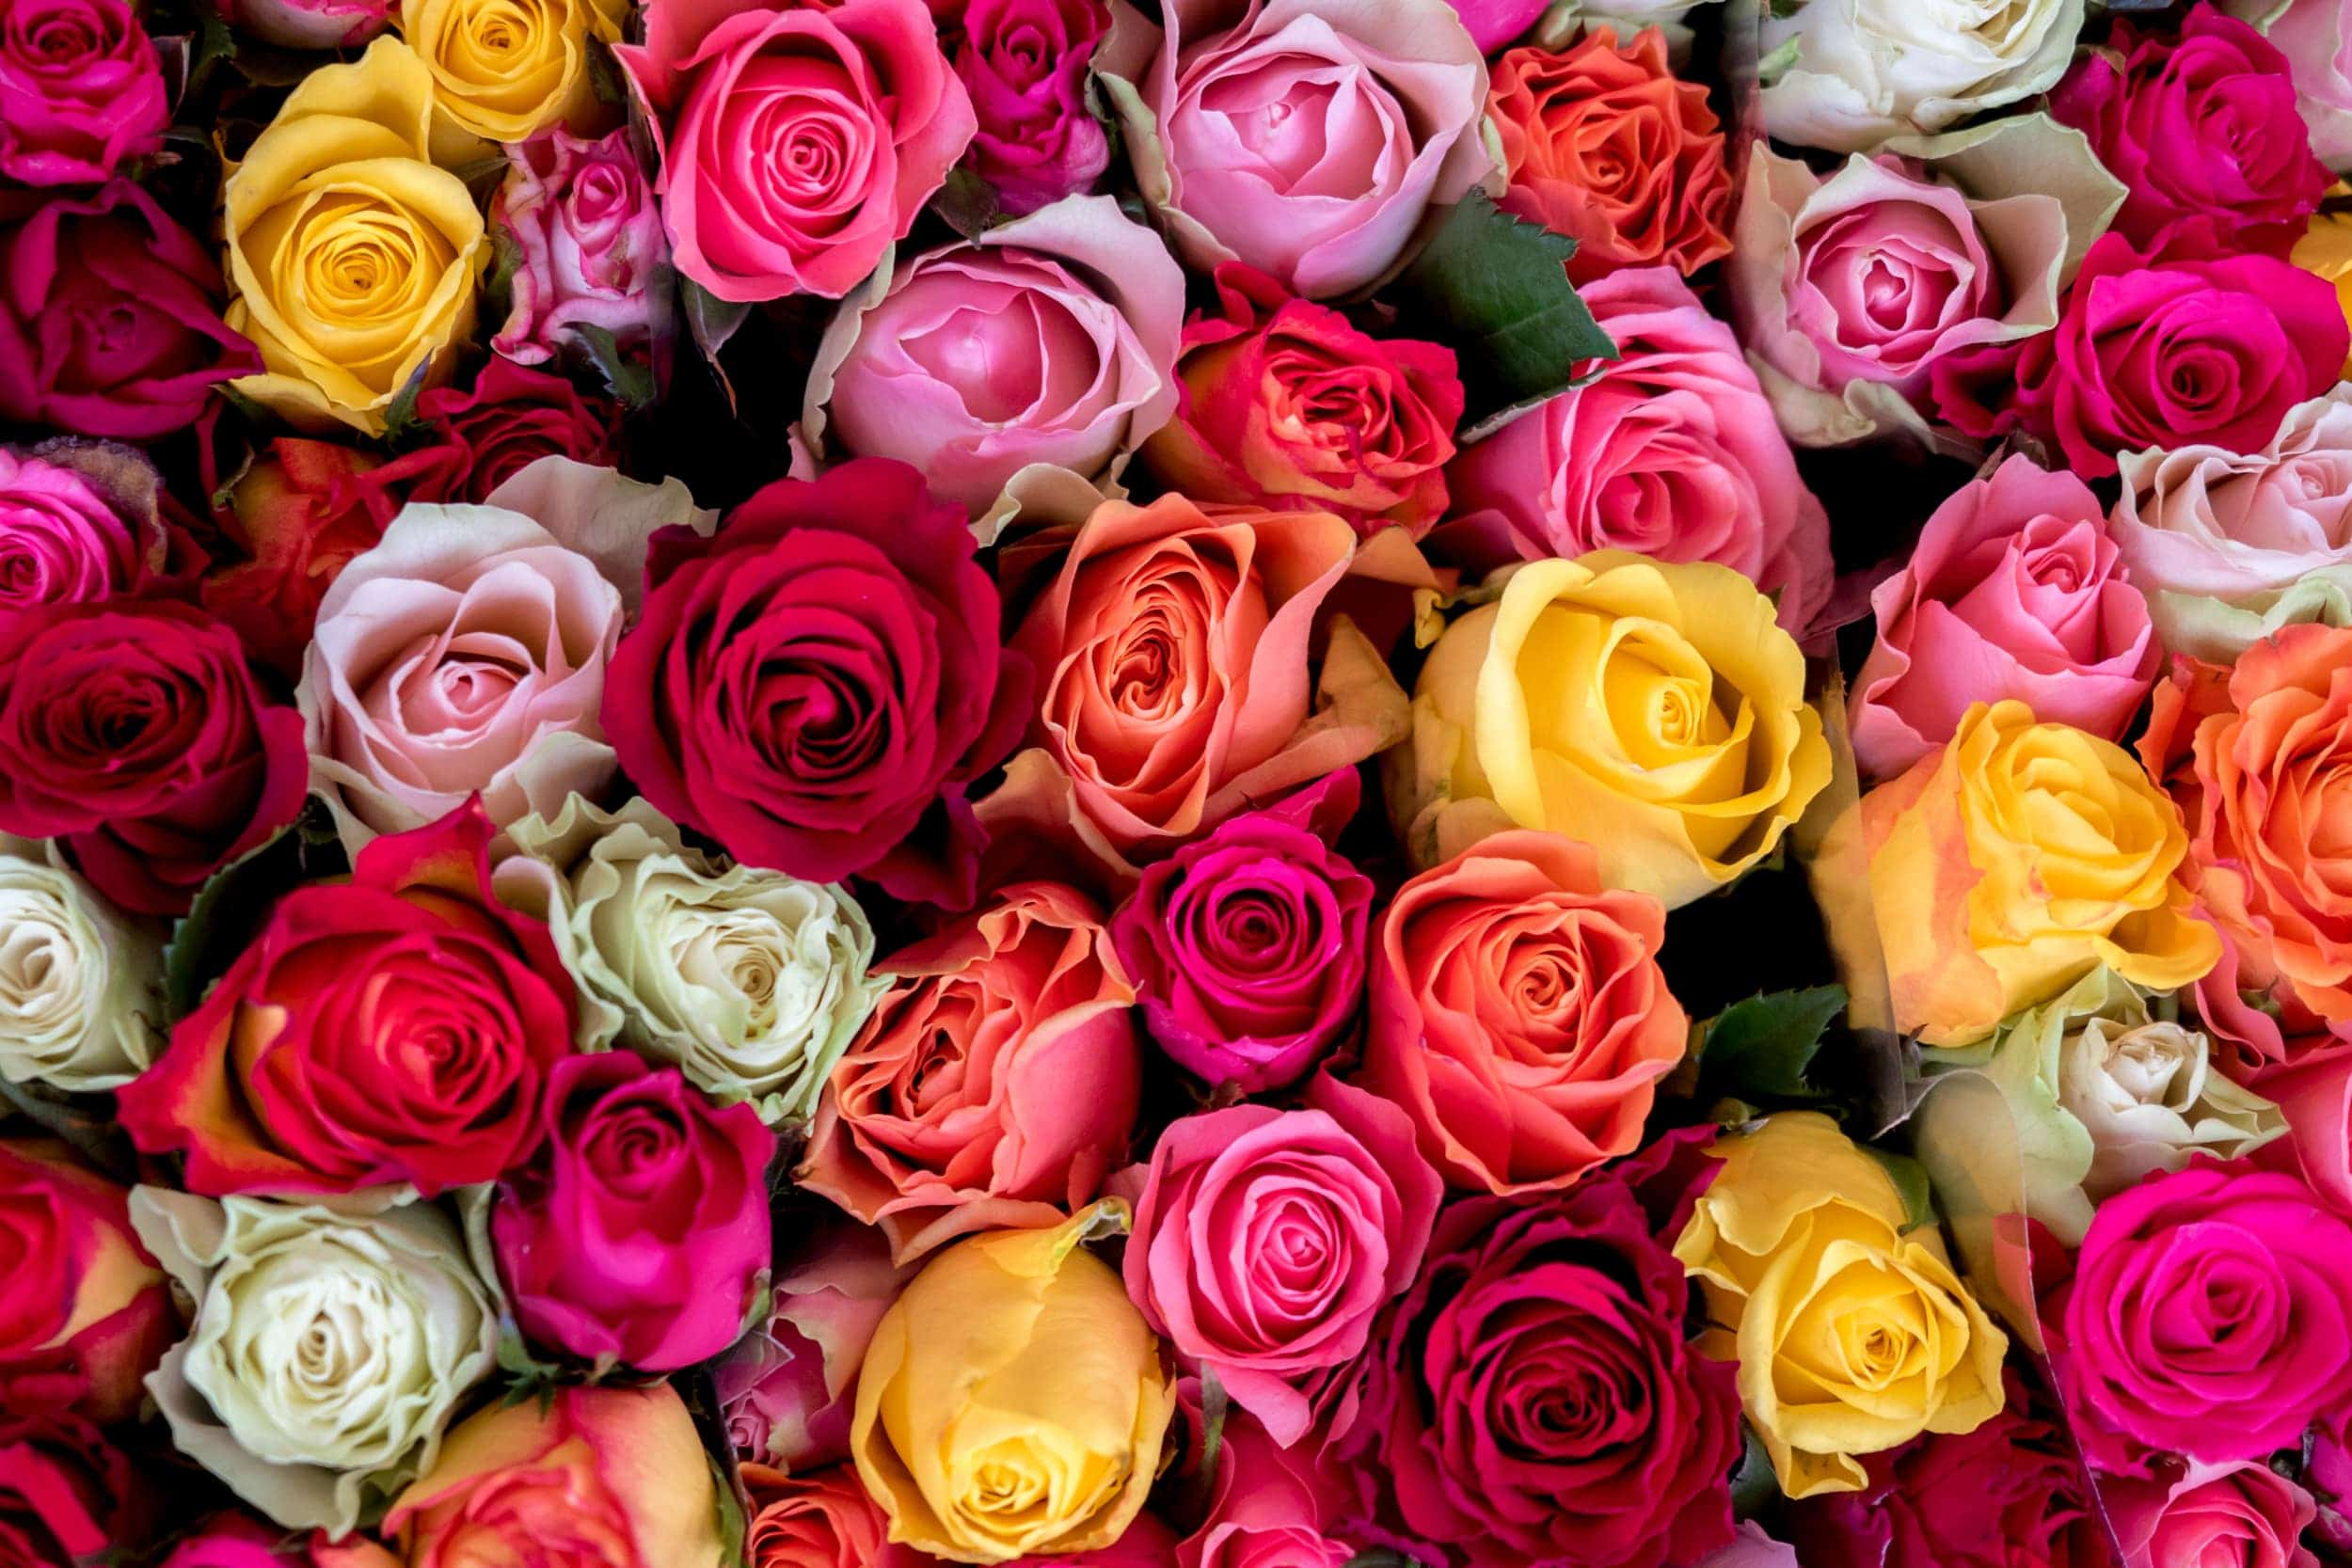 Roses in a large colourful bouquet